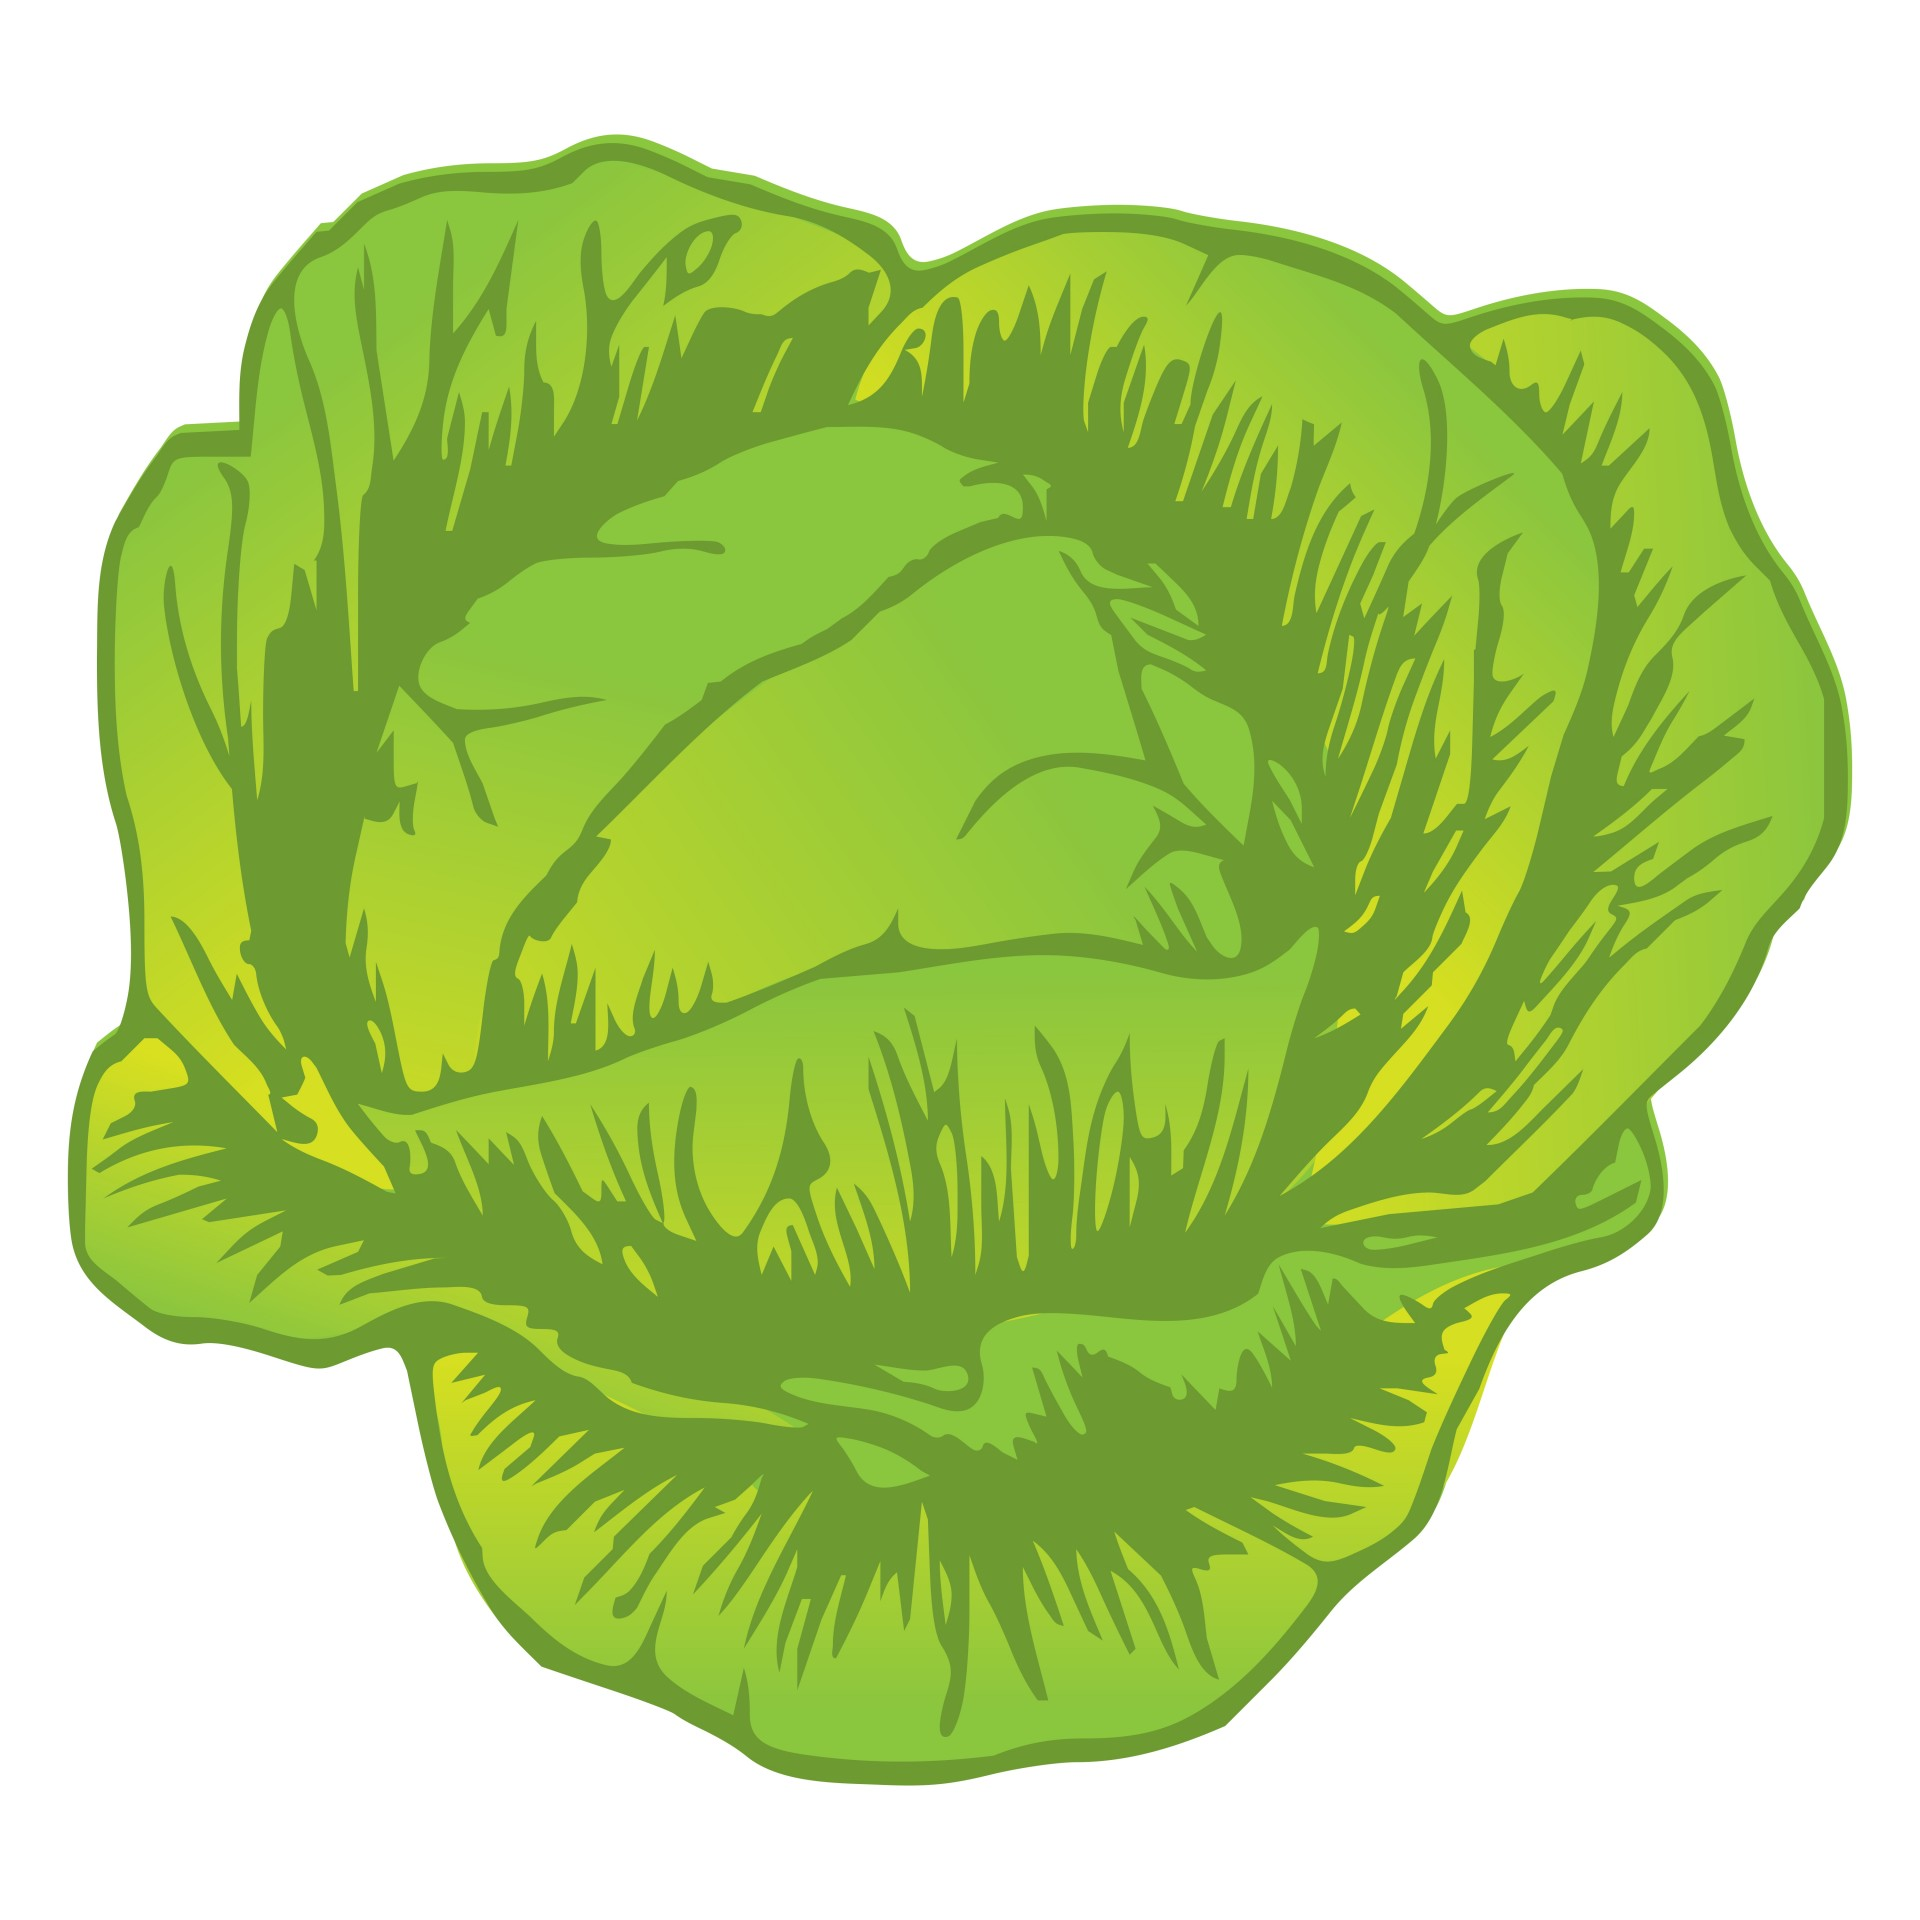 1920x1920 Cabbage Drawing Free Stock Photo